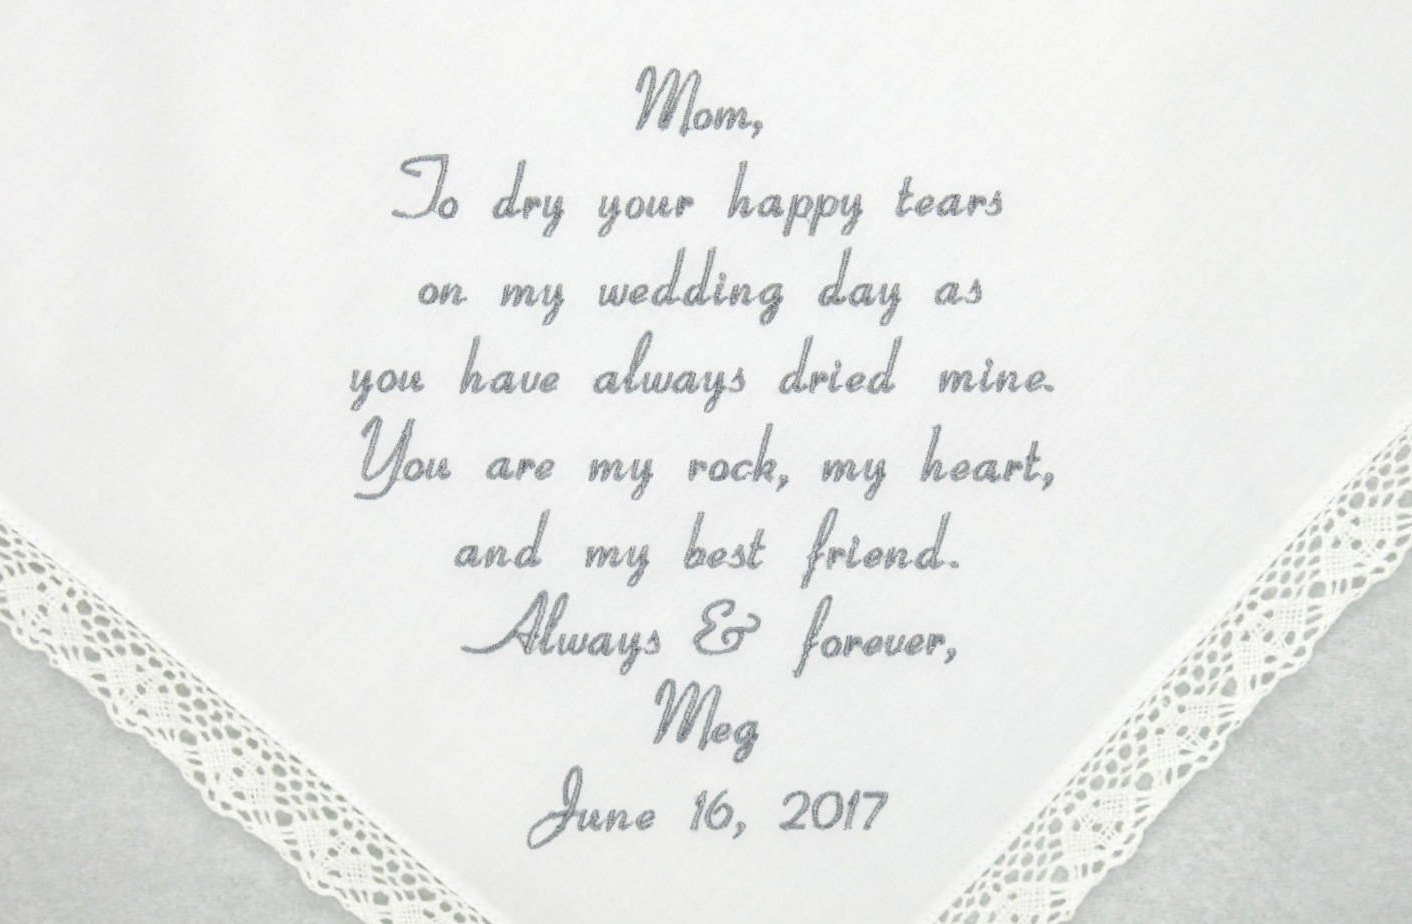 Wedding Day Letter To Bride.Mother Of The Bride Gift Wedding Hankerchief Embroidered Wedding Hankerchiefs Mother Of The Bride Handkerchief Personalized Handkerchief Mom